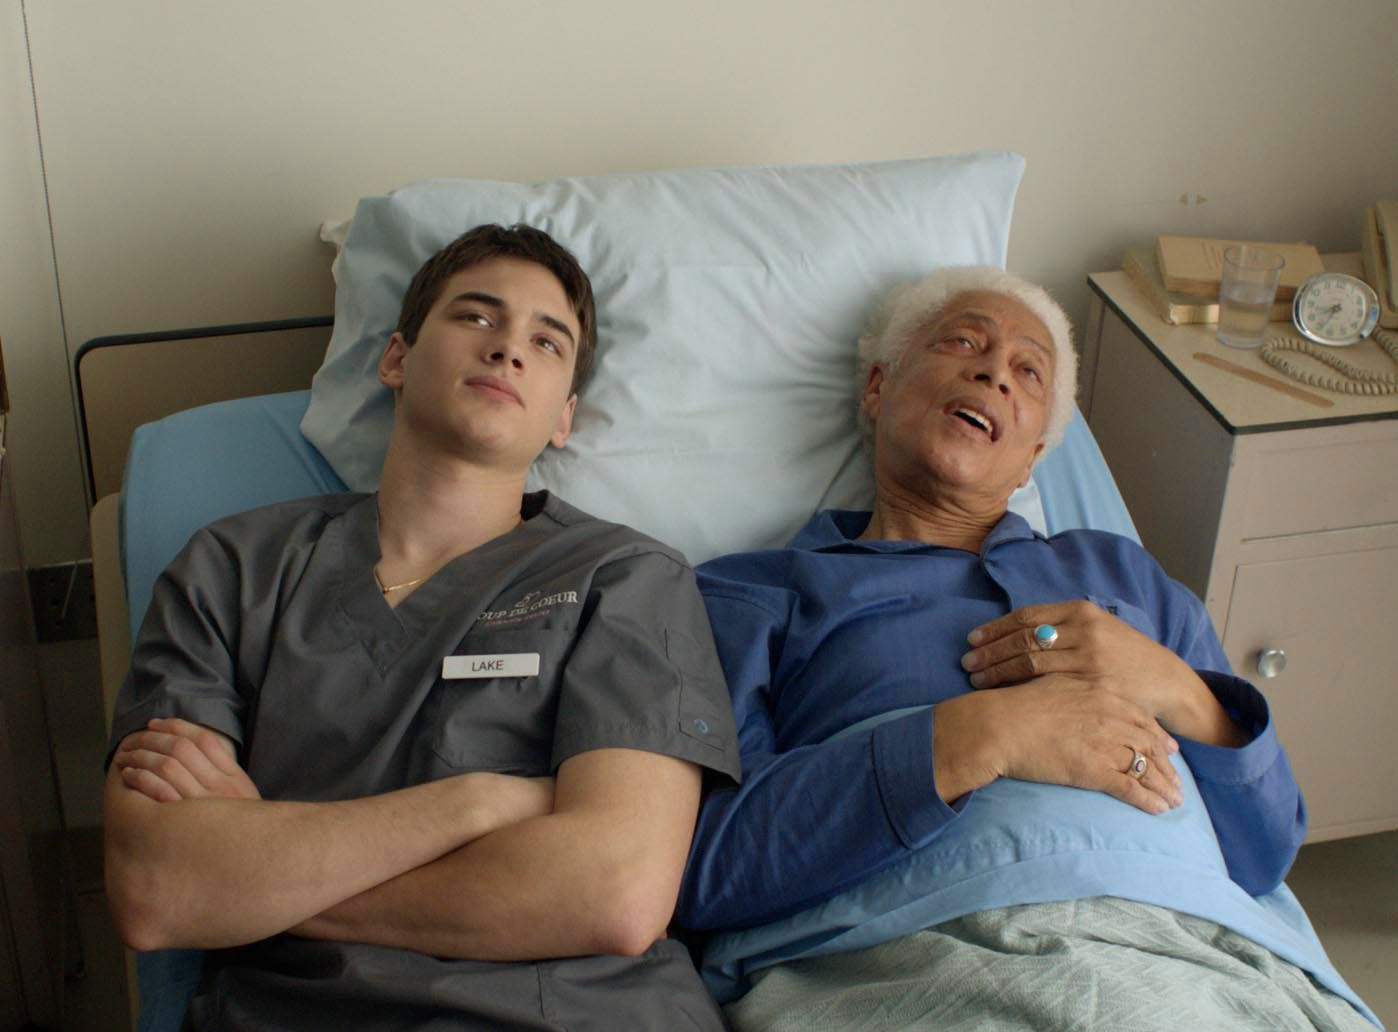 17_GERONTOPHILIA_Filmoption©2013_screengrab.jpg